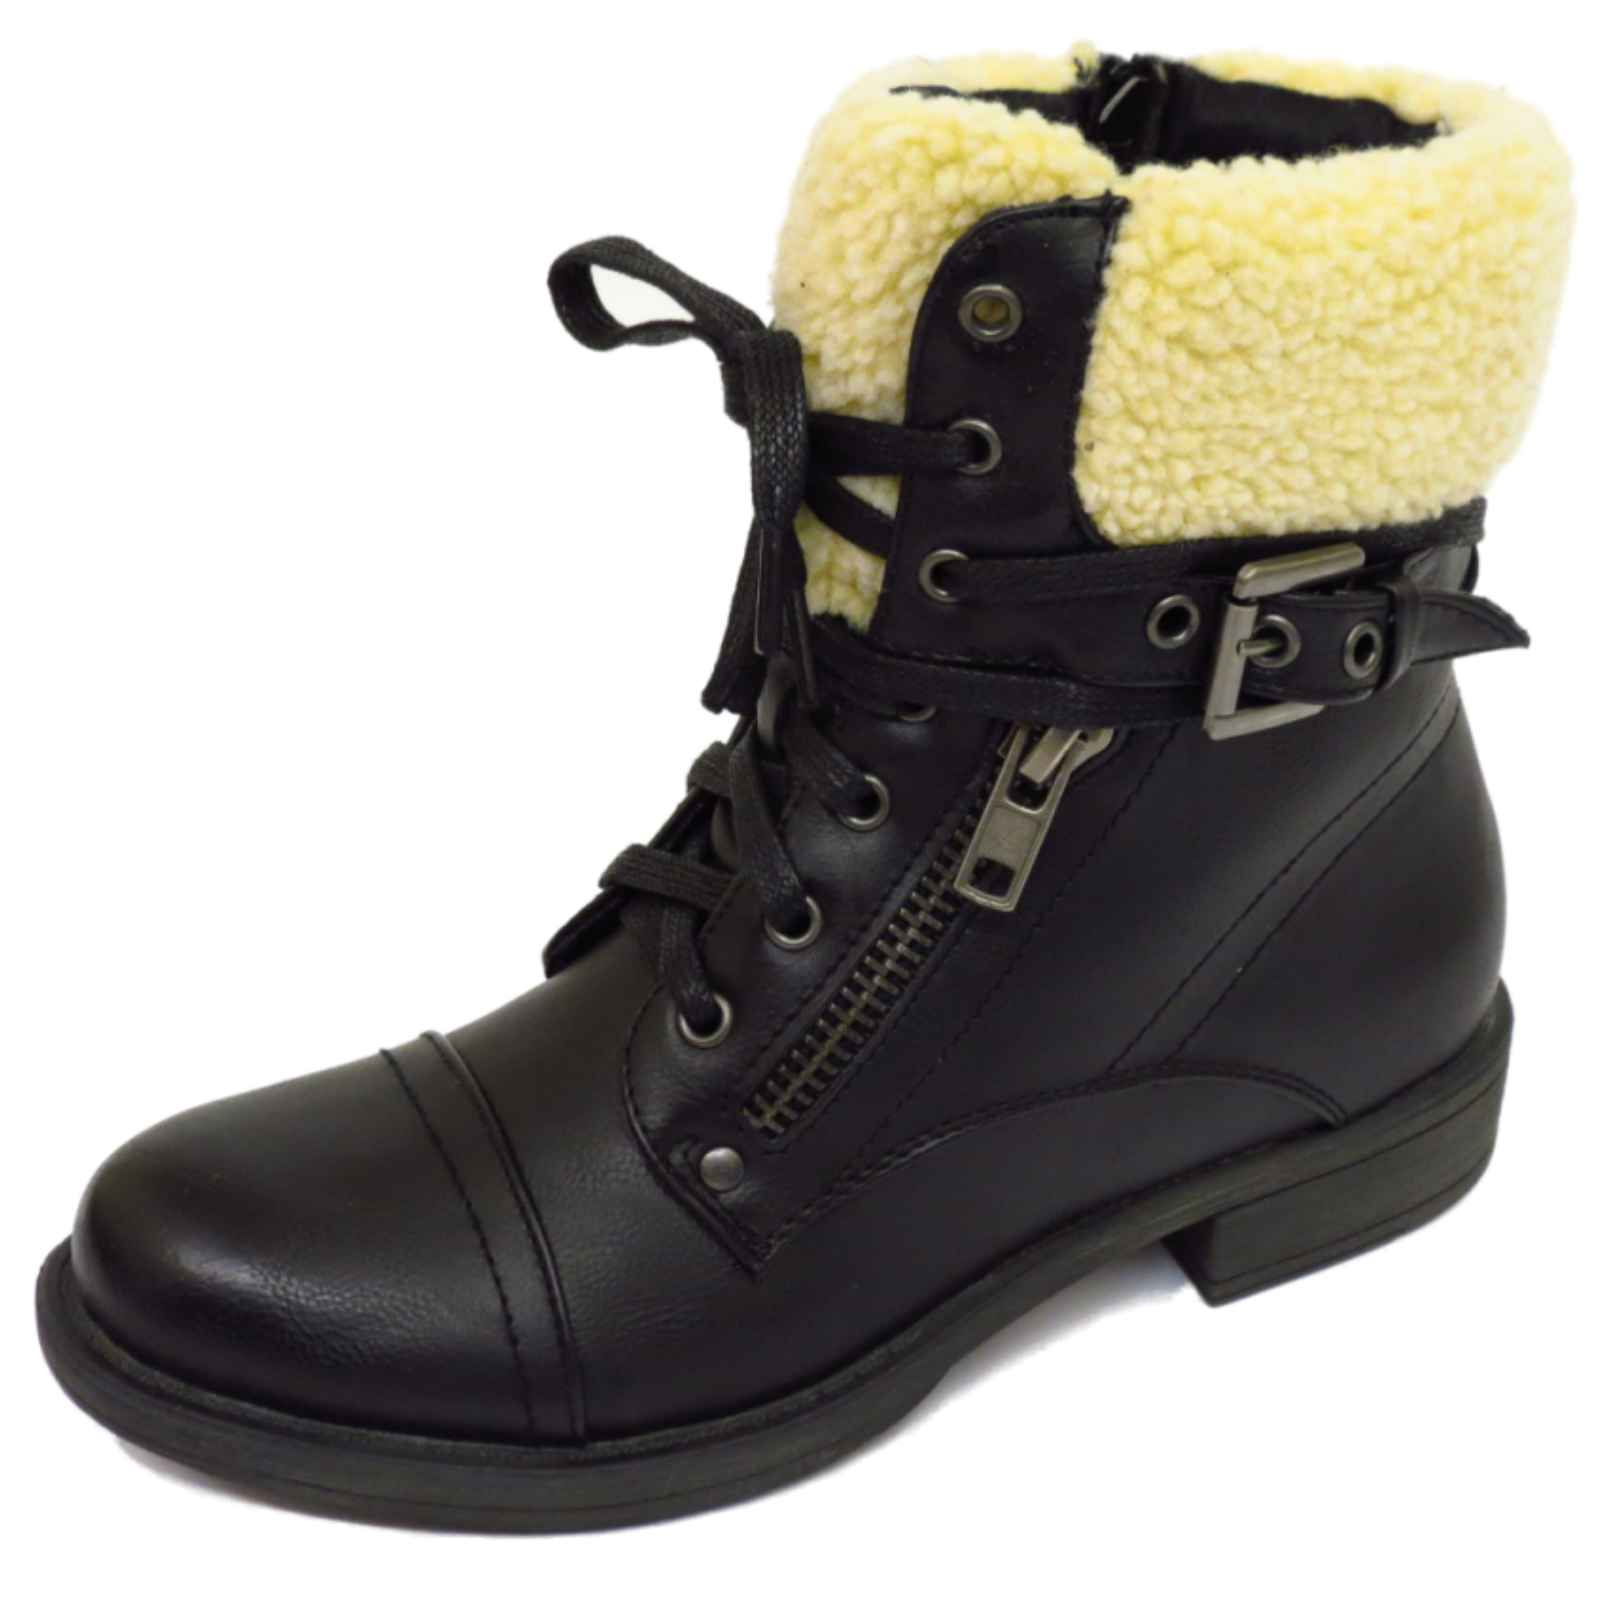 LADIES-DOLCIS-BLACK-OR-BROWN-LACE-UP-MILITARY-WARM-ANKLE-ARMY-ZIP-BOOTS-SHOES